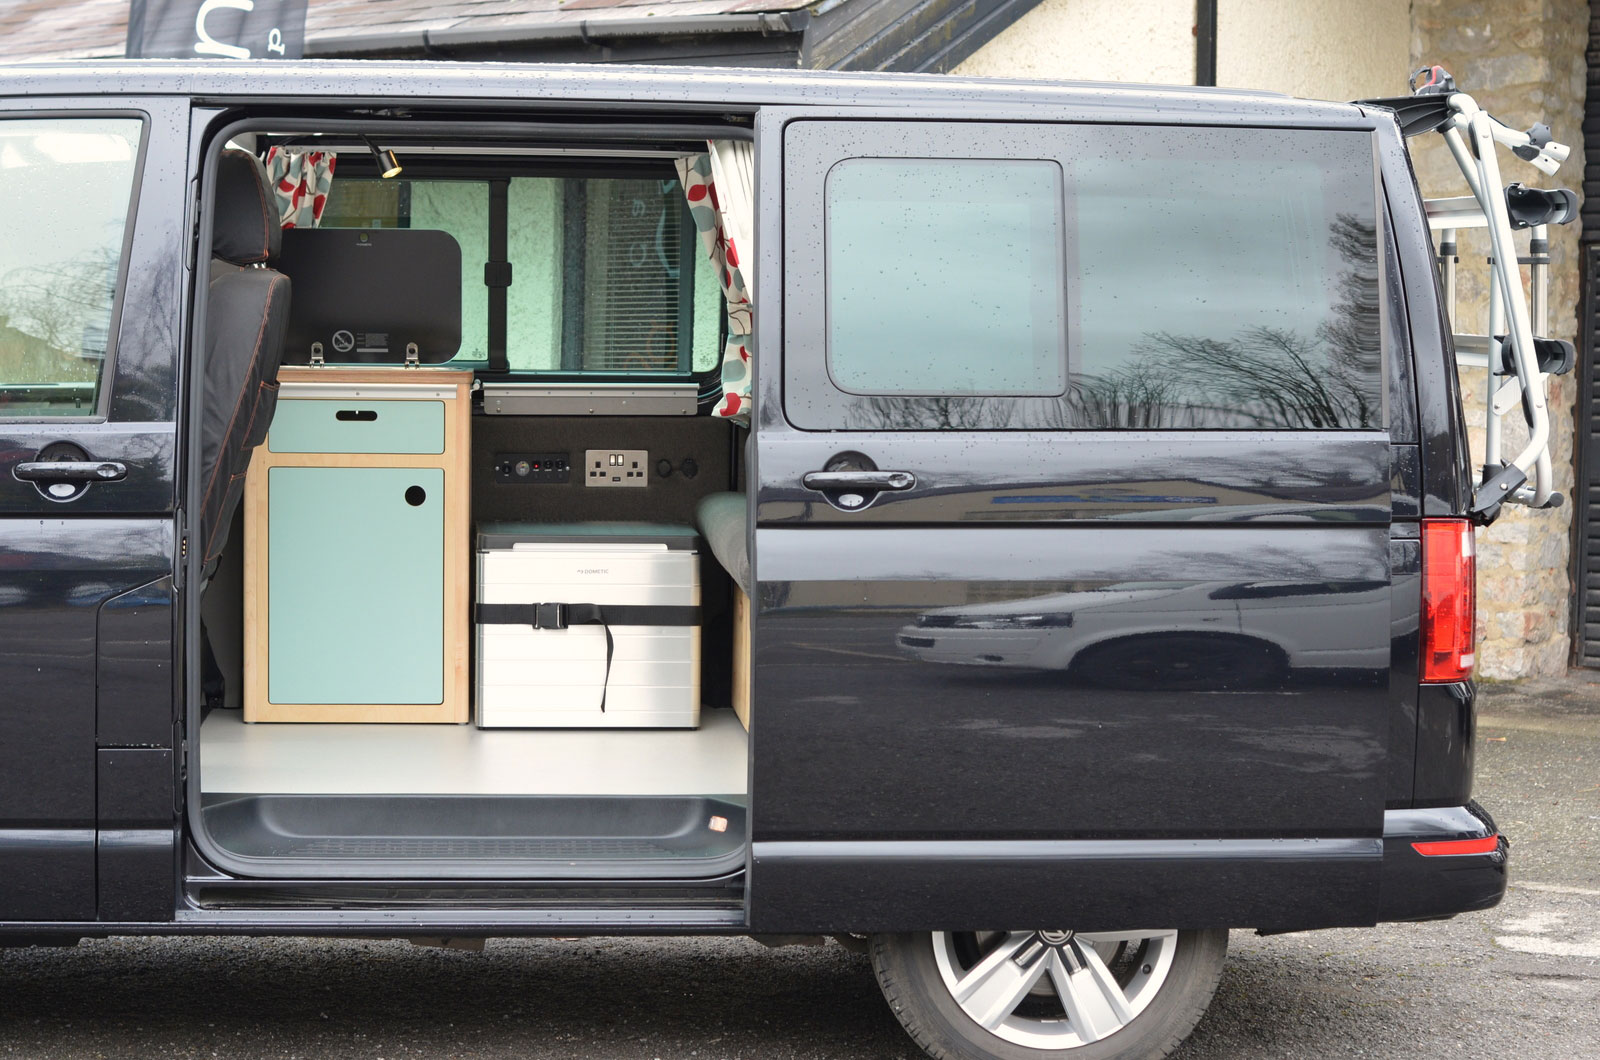 Side view of free-standing bespoke plywood kitchen unit and cool box in campervan